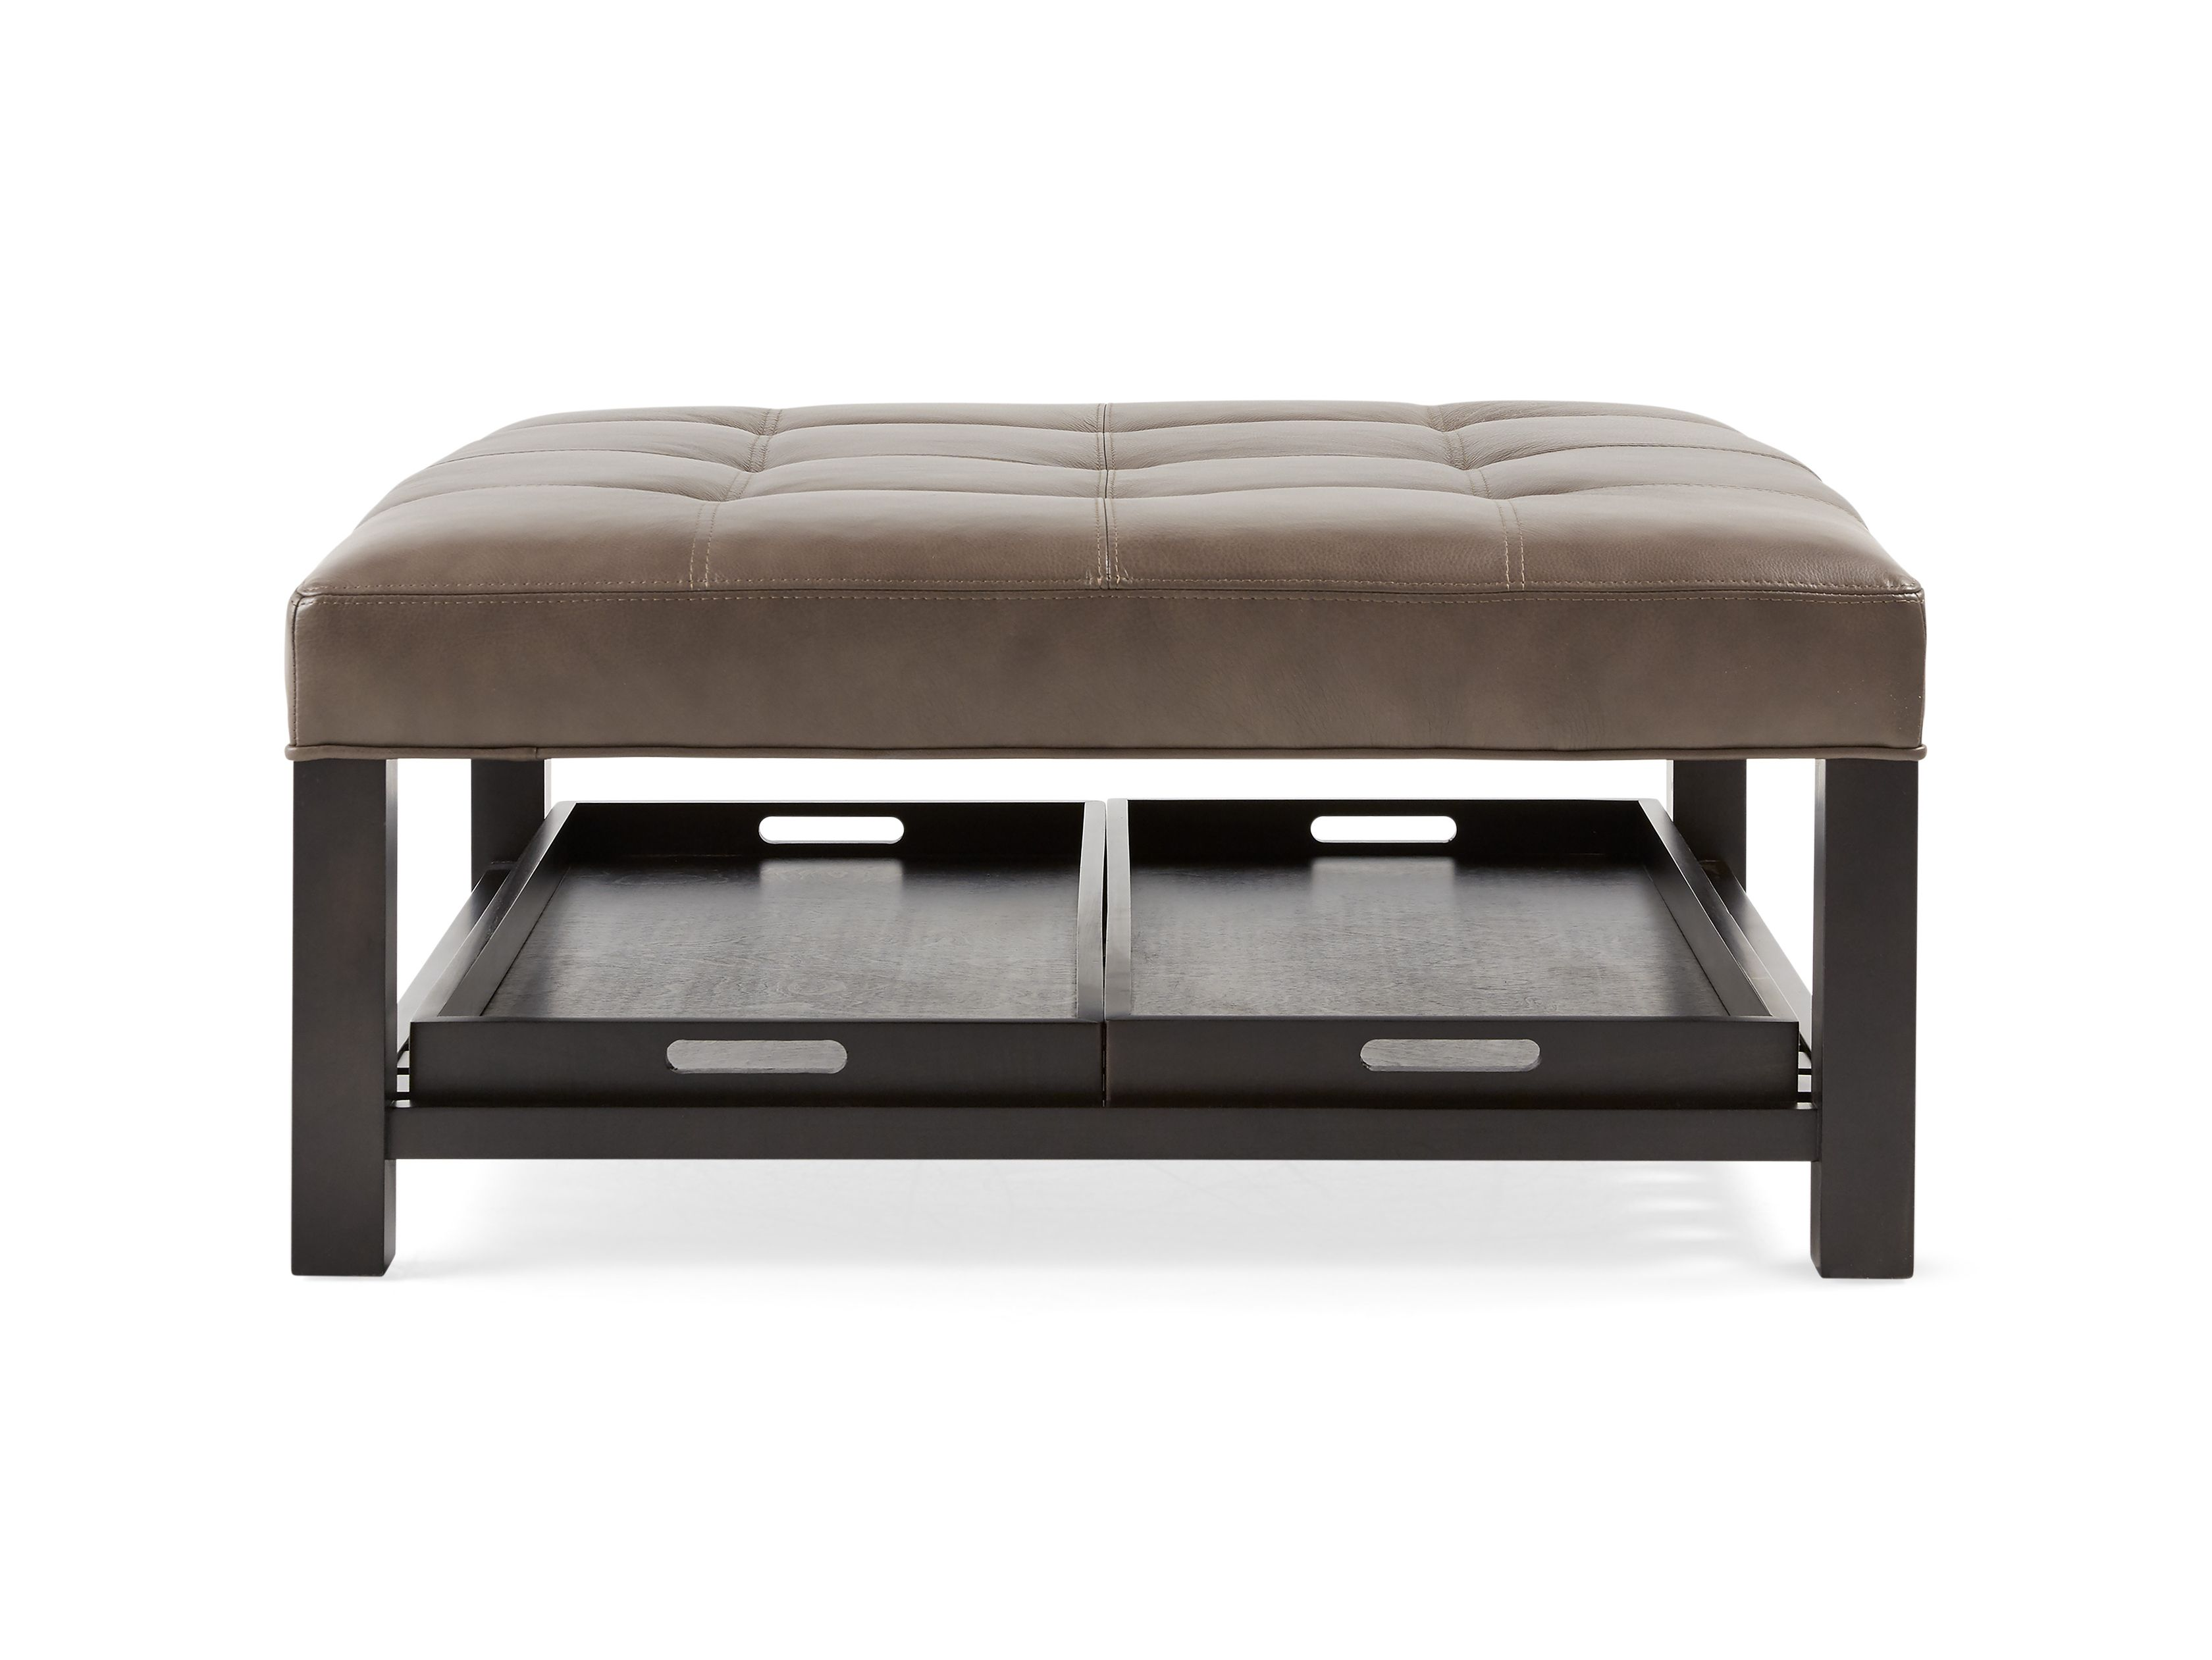 Butler Leather Biscuit Tufted Ottoman - Arhaus Furniture